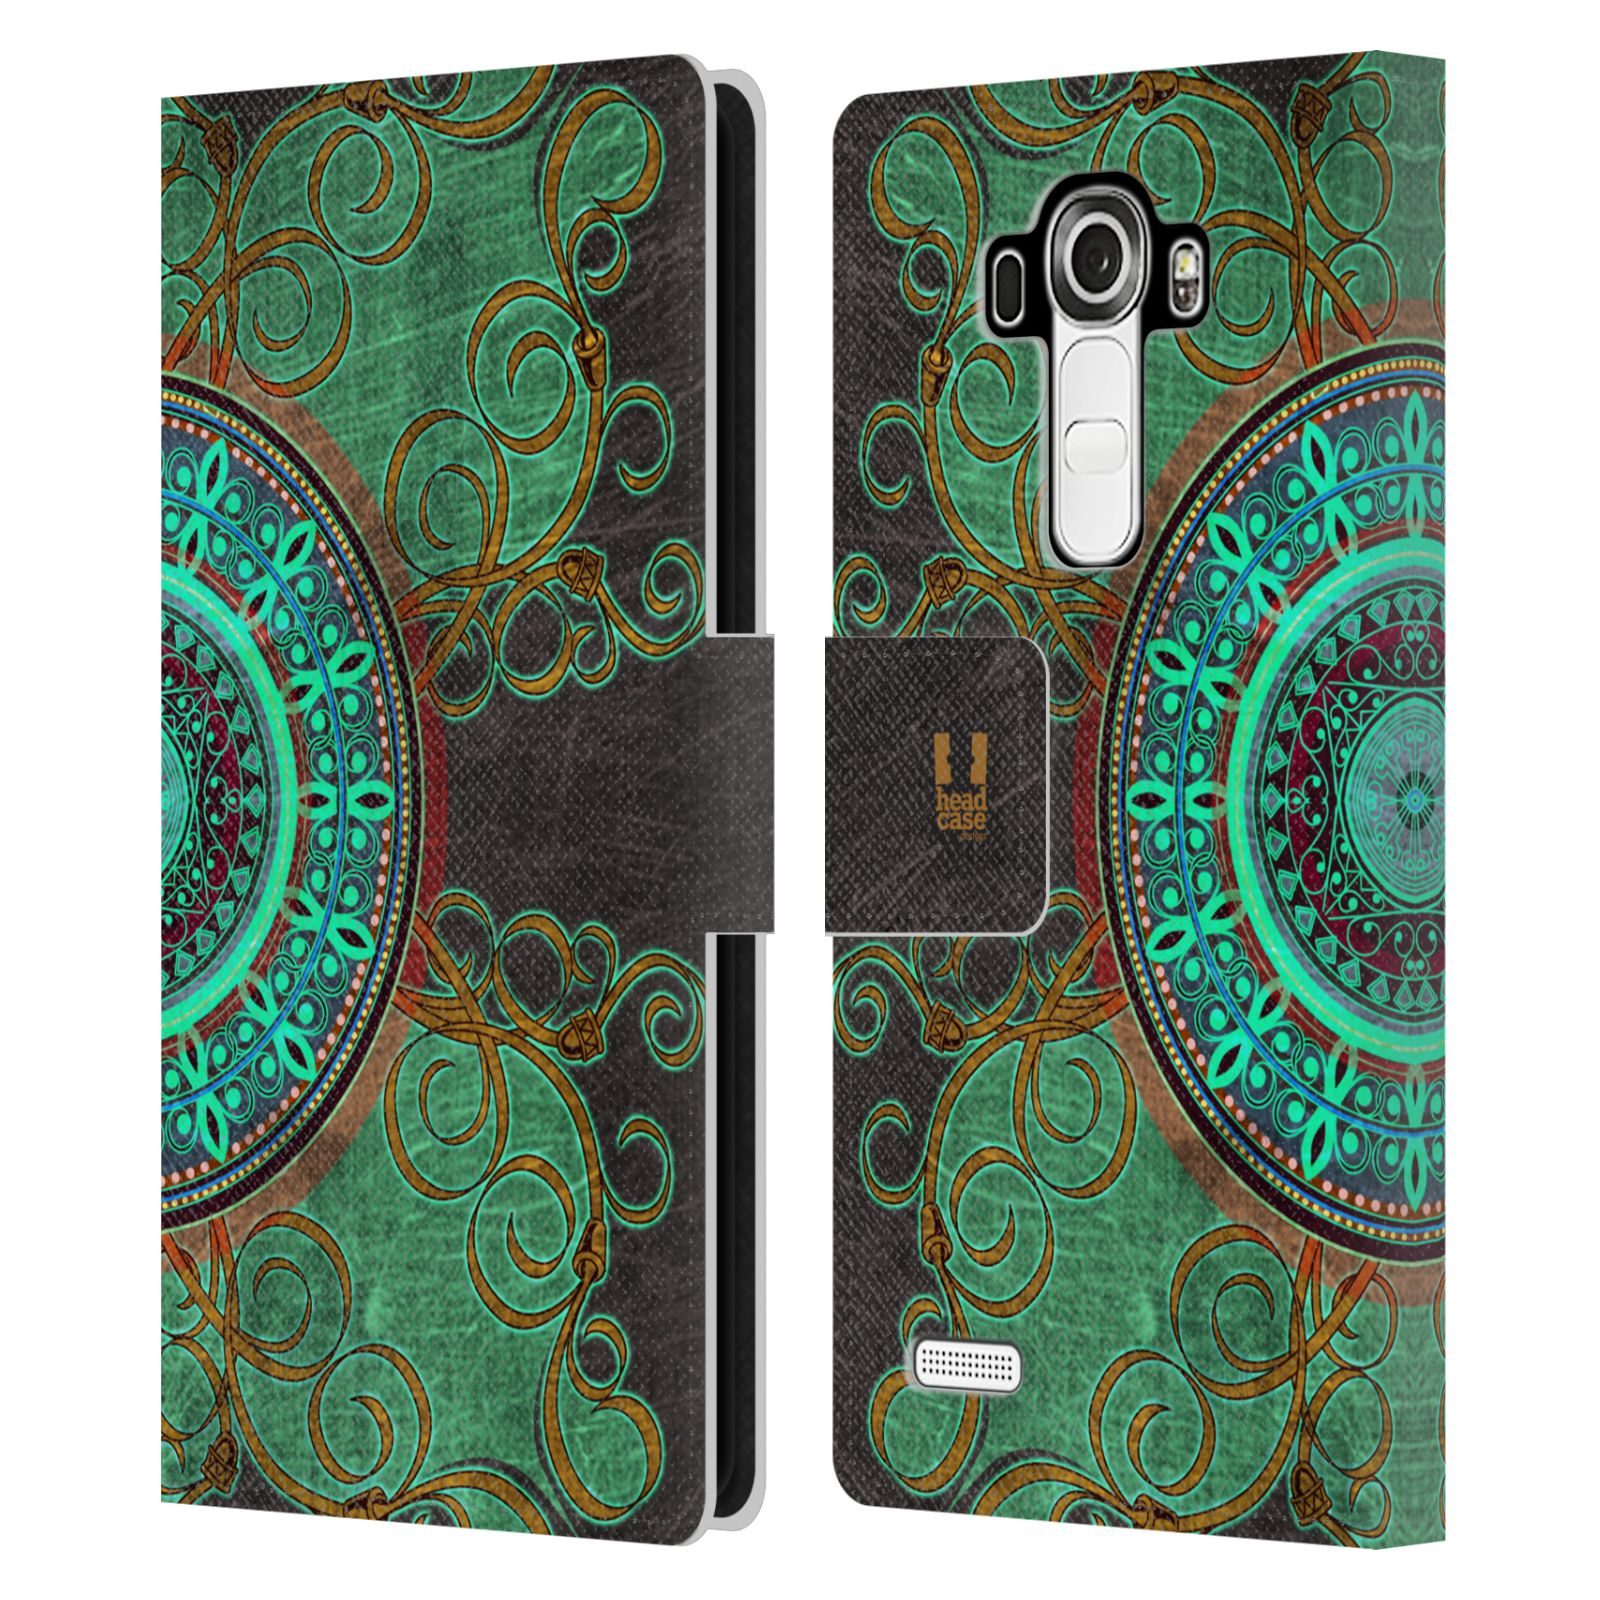 Book Cover Patterns Photo Free Shipping ~ Head case designs arabesque pattern leather book wallet